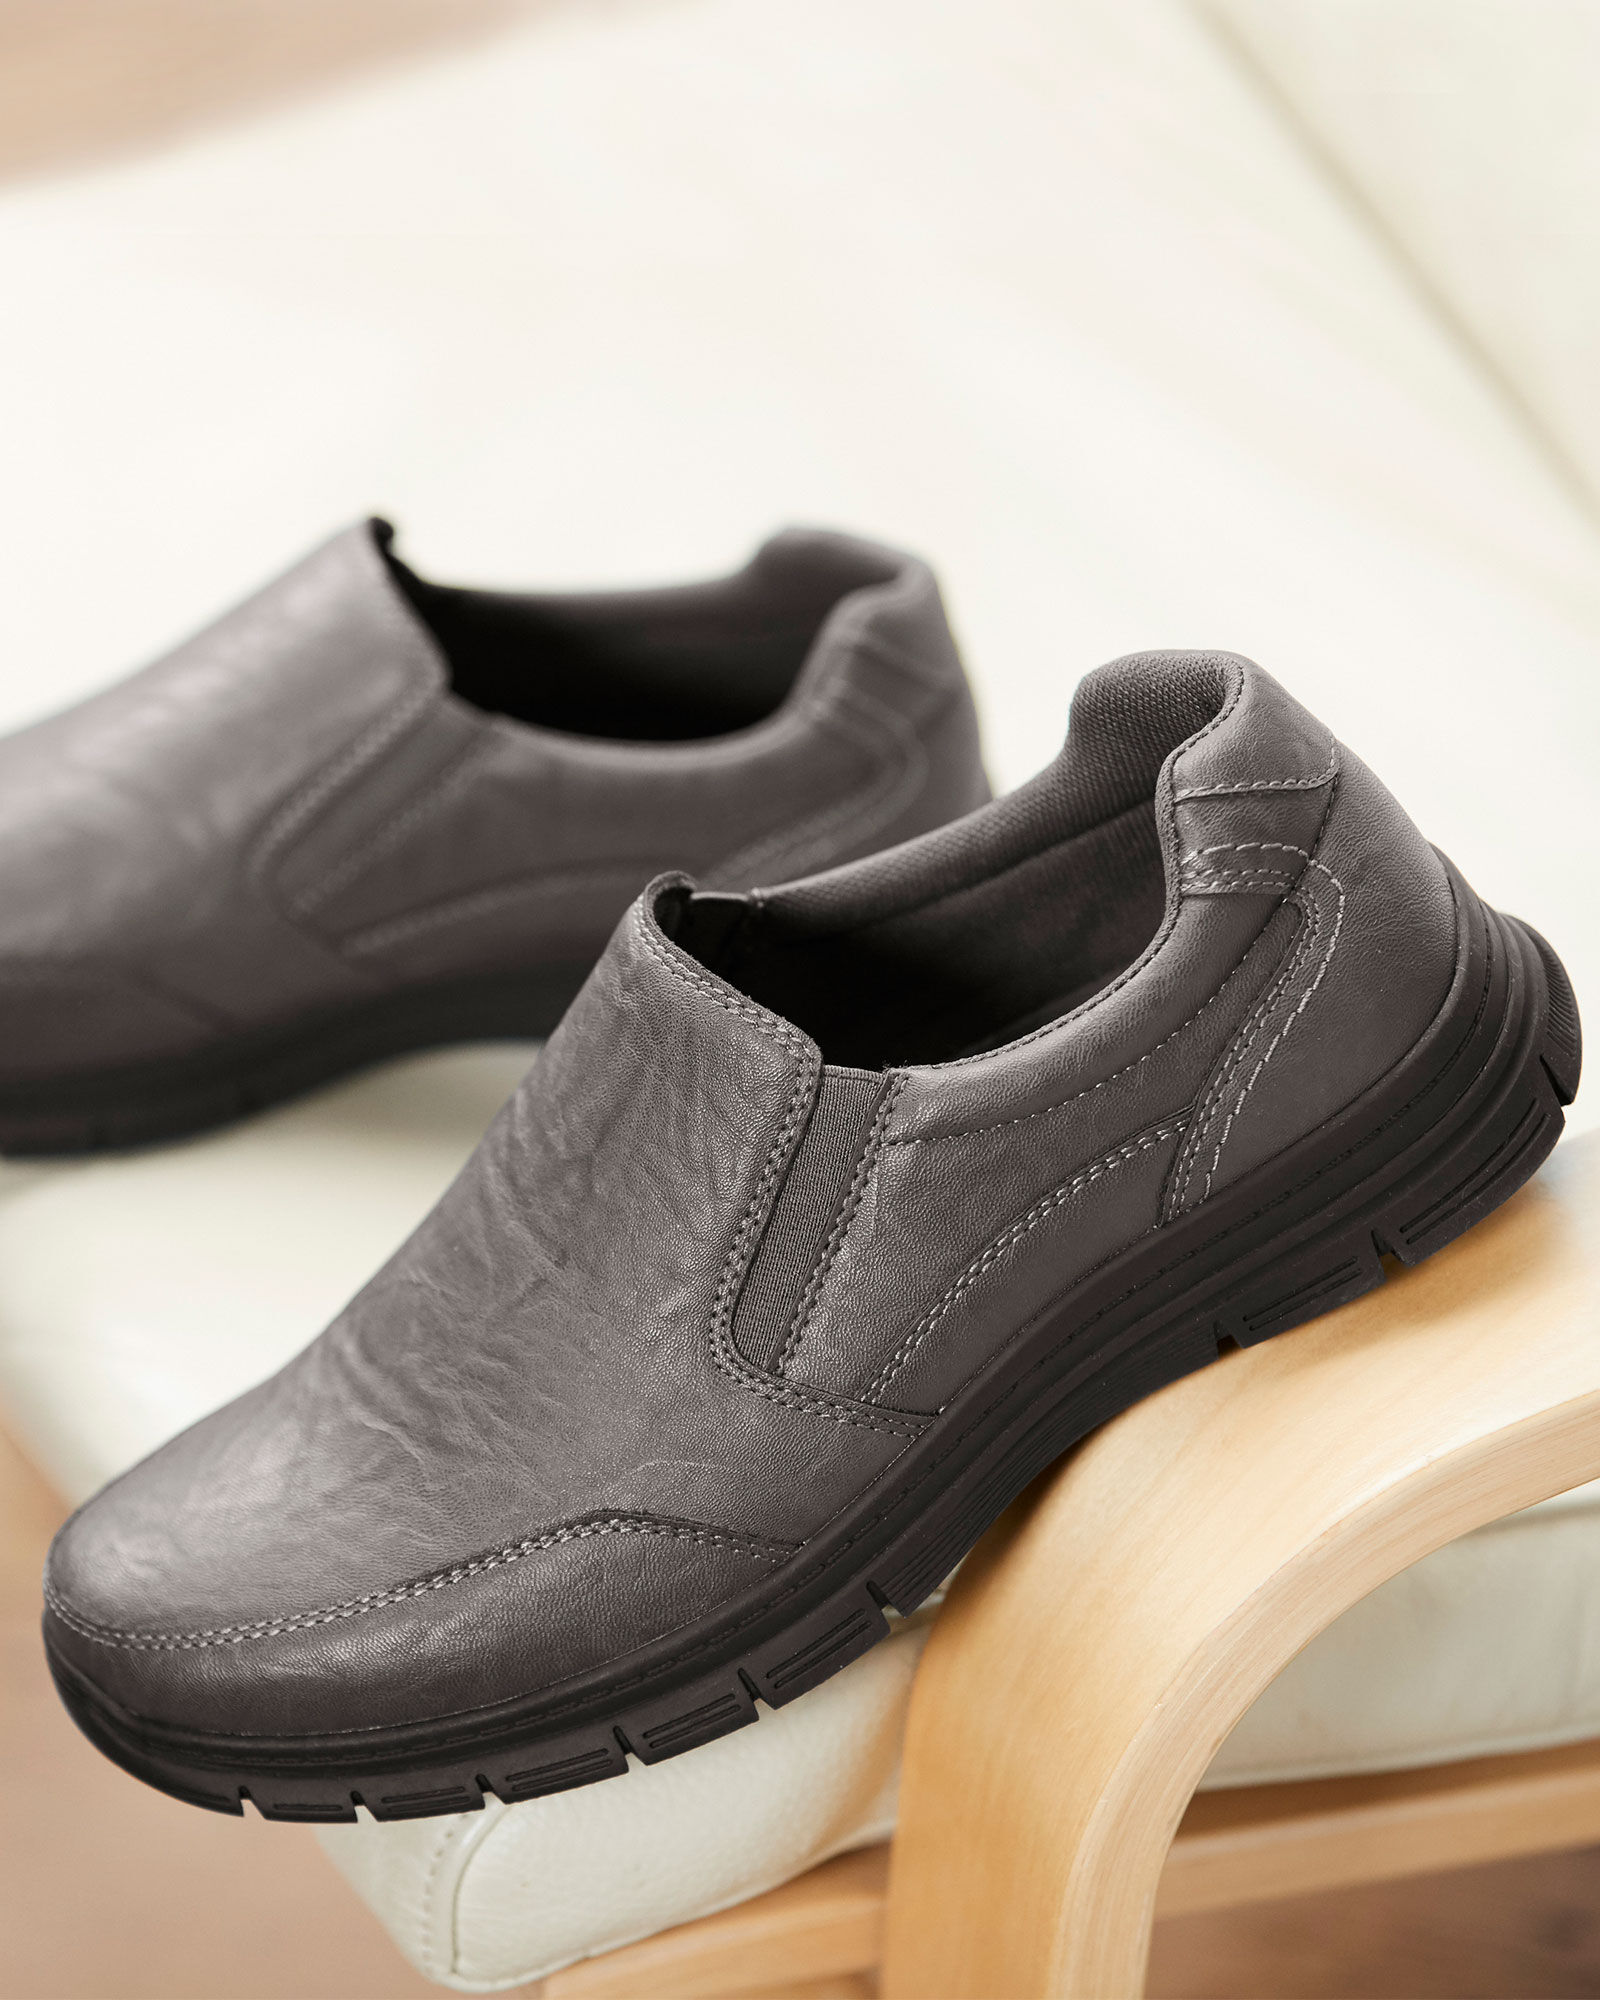 Dual Fit Casual Slip-on Shoes at Cotton